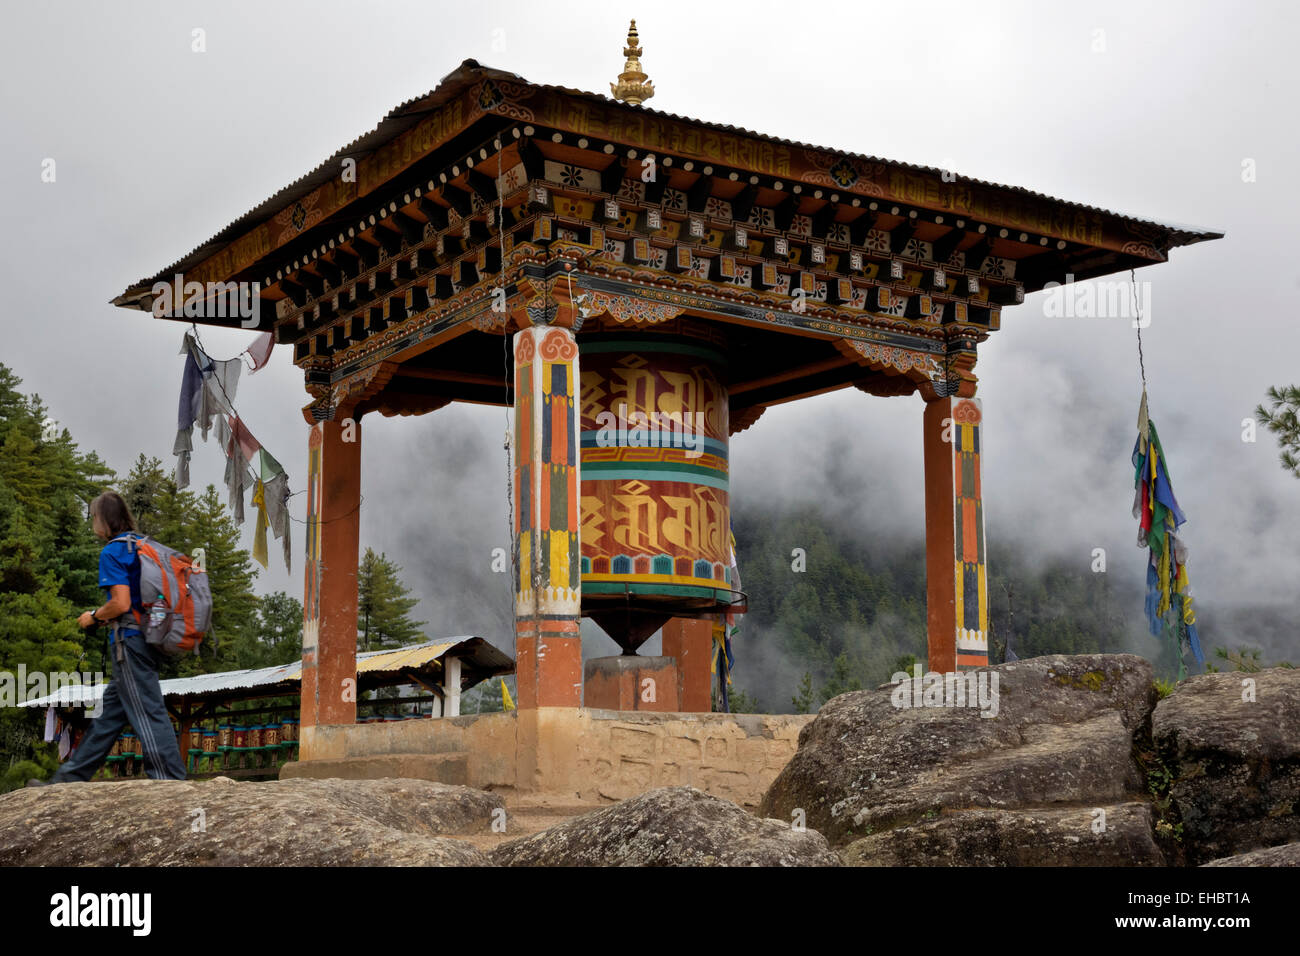 BU00318-00...BHUTAN - Prayer wheels along the trail to Taktshang Goemba, (the Tiger's Nest Monastery). - Stock Image